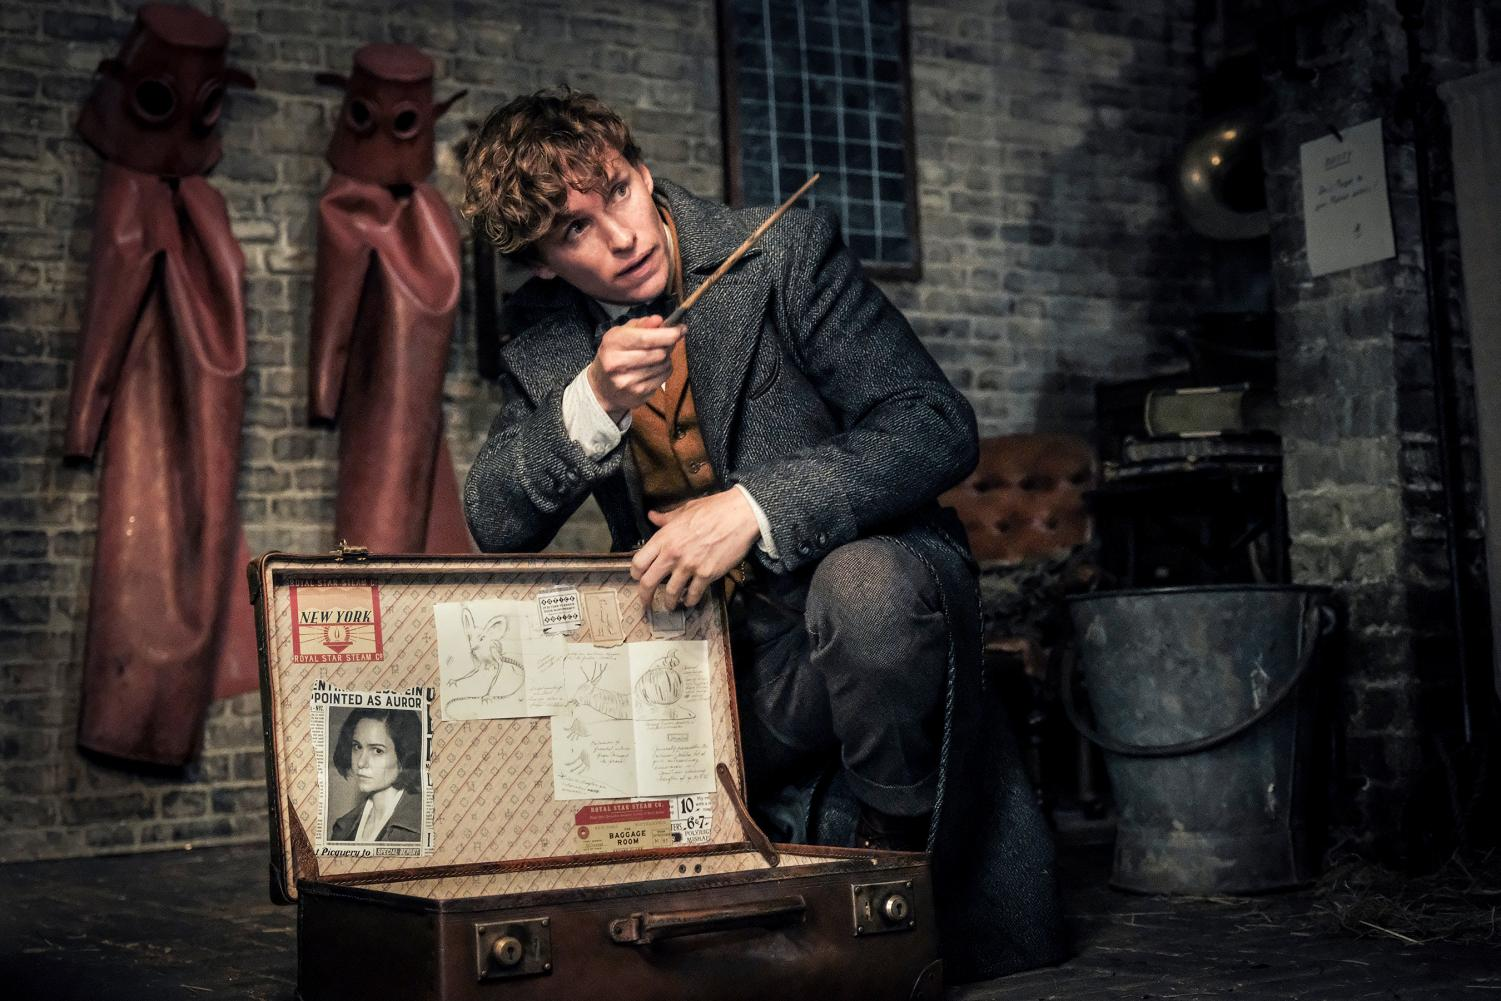 Eddie Redmayne plays Newt Scamander in the thrilling sequel to the first Fantastic Beasts film, further expanding the Harry Potter universe.